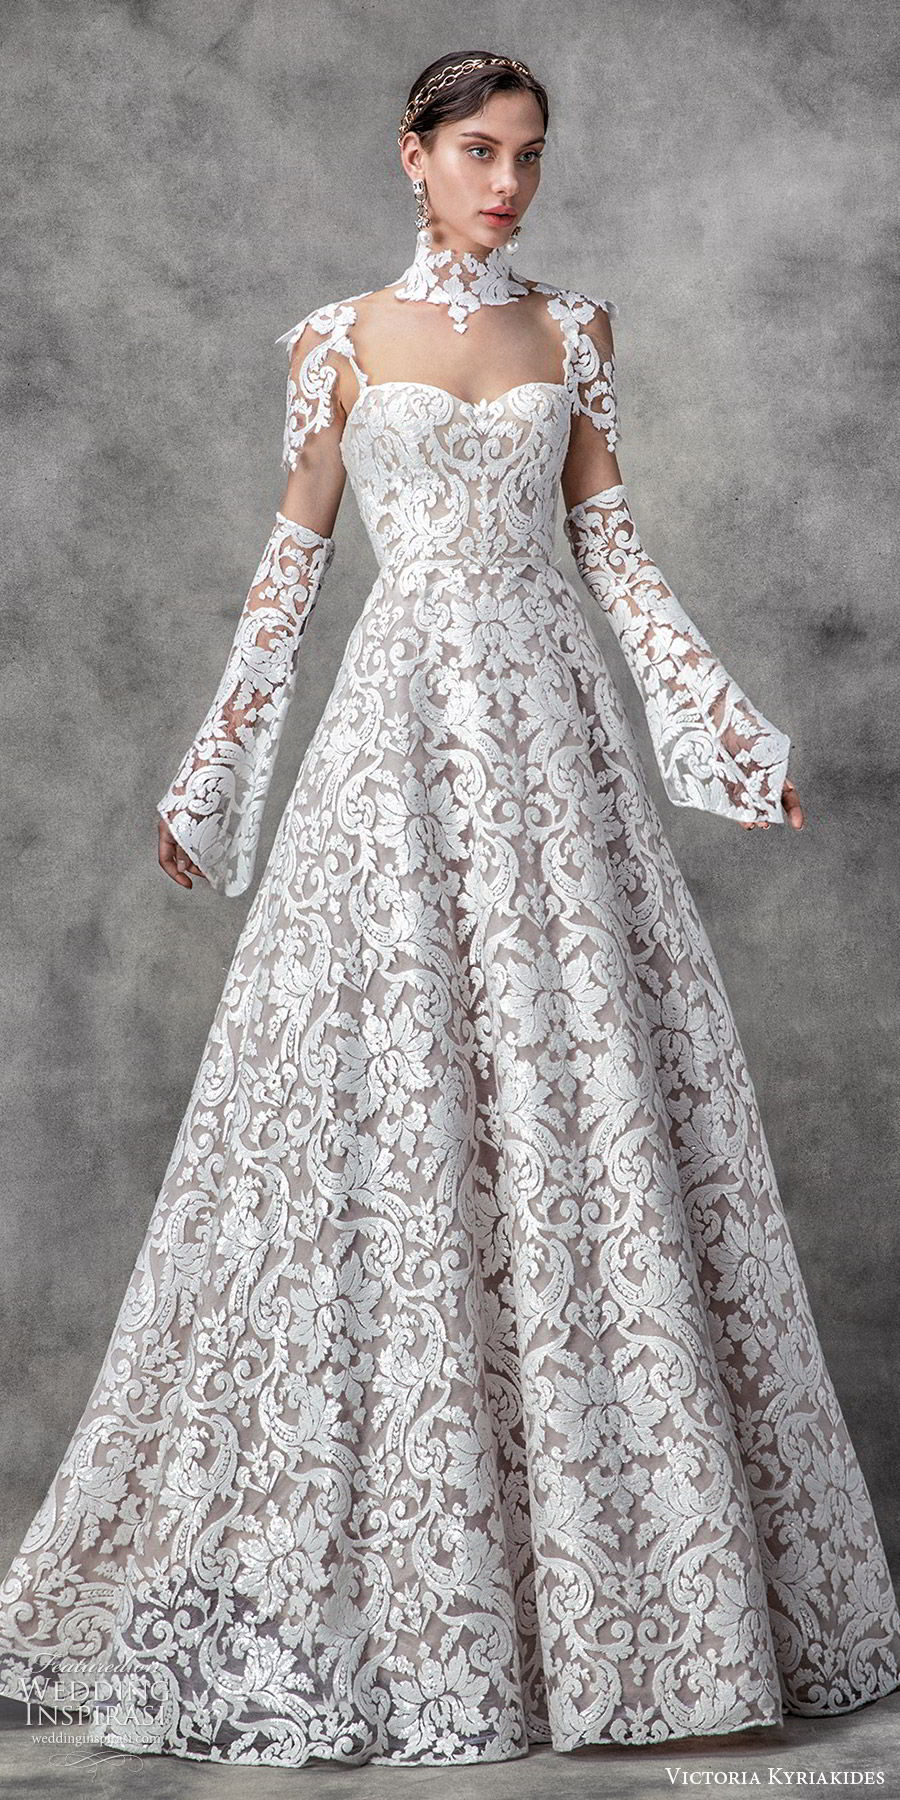 victoria kyriakides spring 2020 bridal illusion cap sleeves detached long sleeves high neck sweetheart fully embellished lace a line ball gown wedding dress (14) modern romantic mv